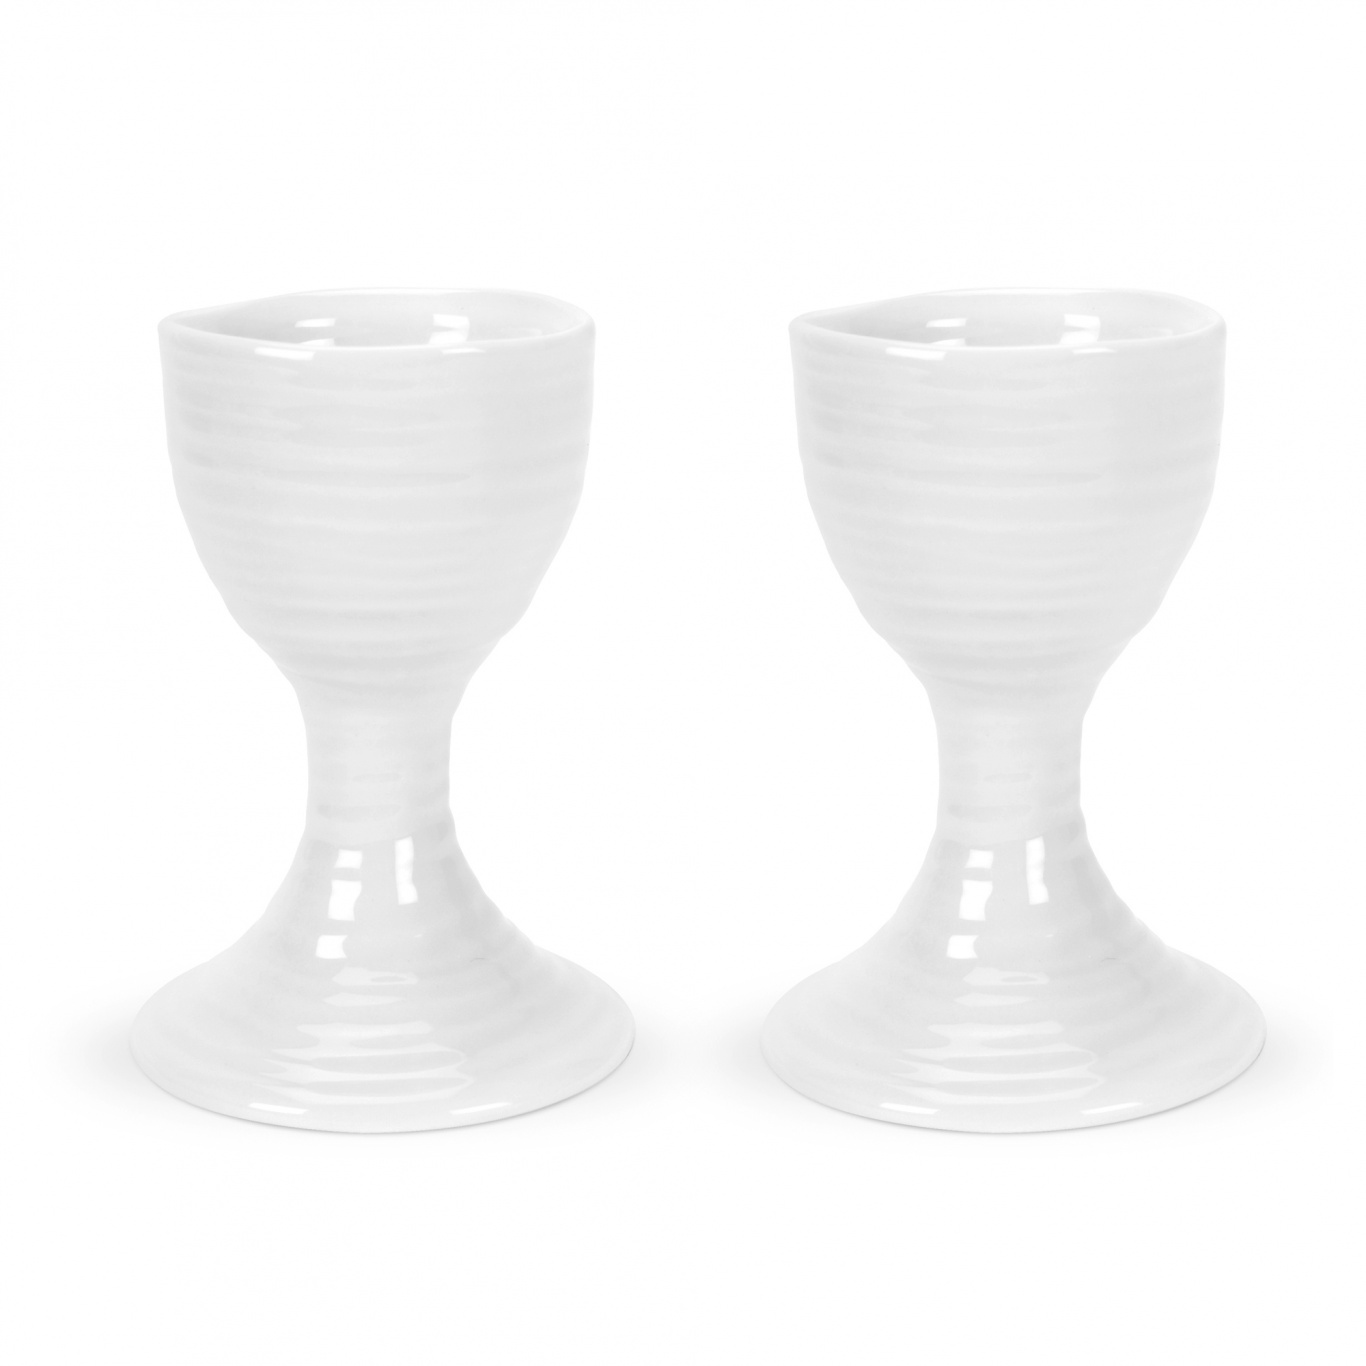 Image of Sophie Conran White Egg Cups 9cm Set of 2